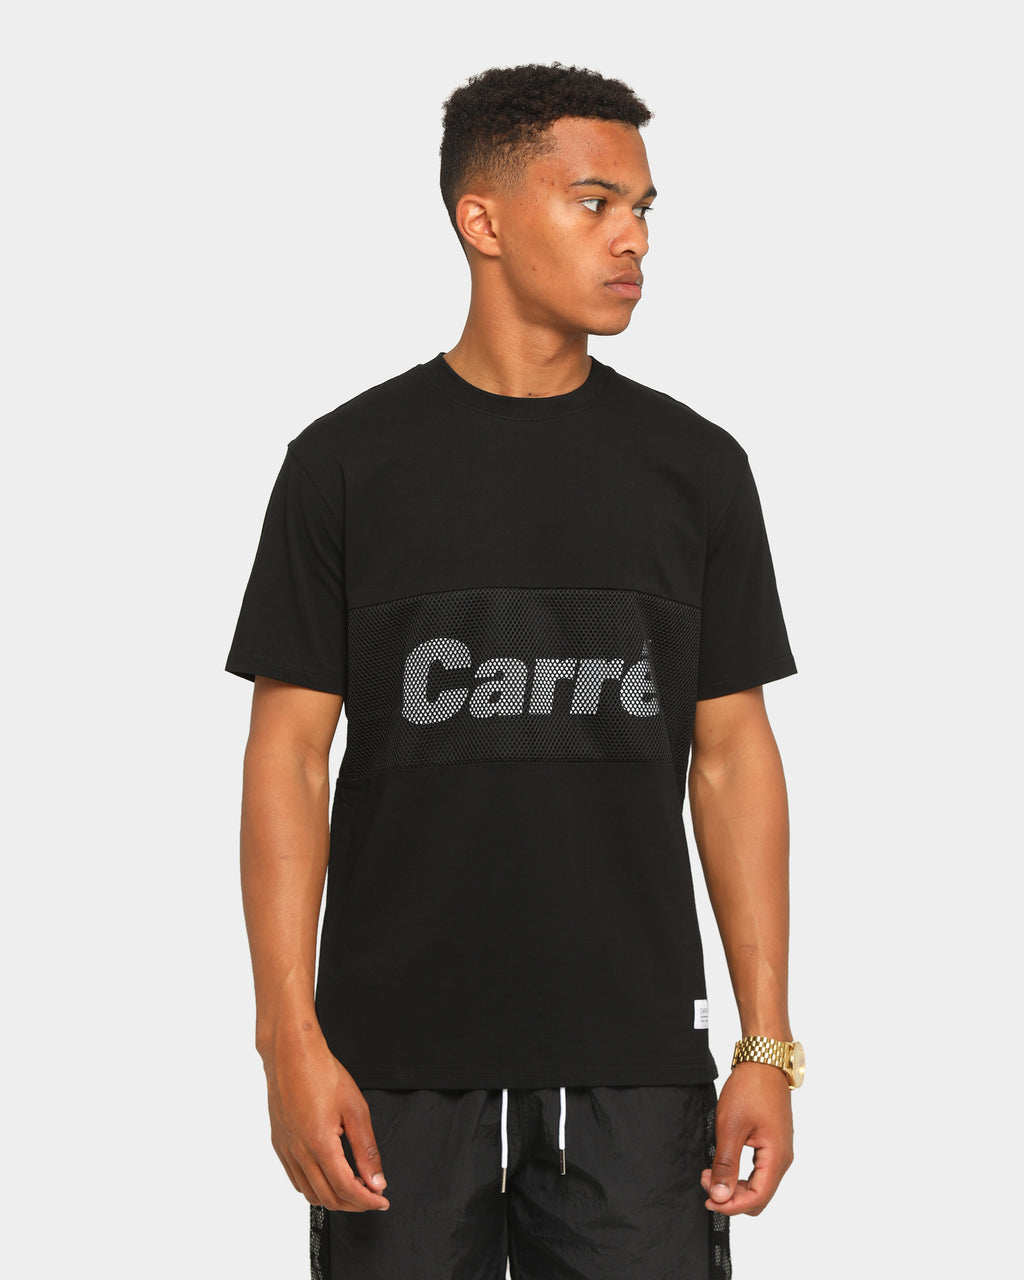 Carré Piste Short Sleeve T-Shirt Black